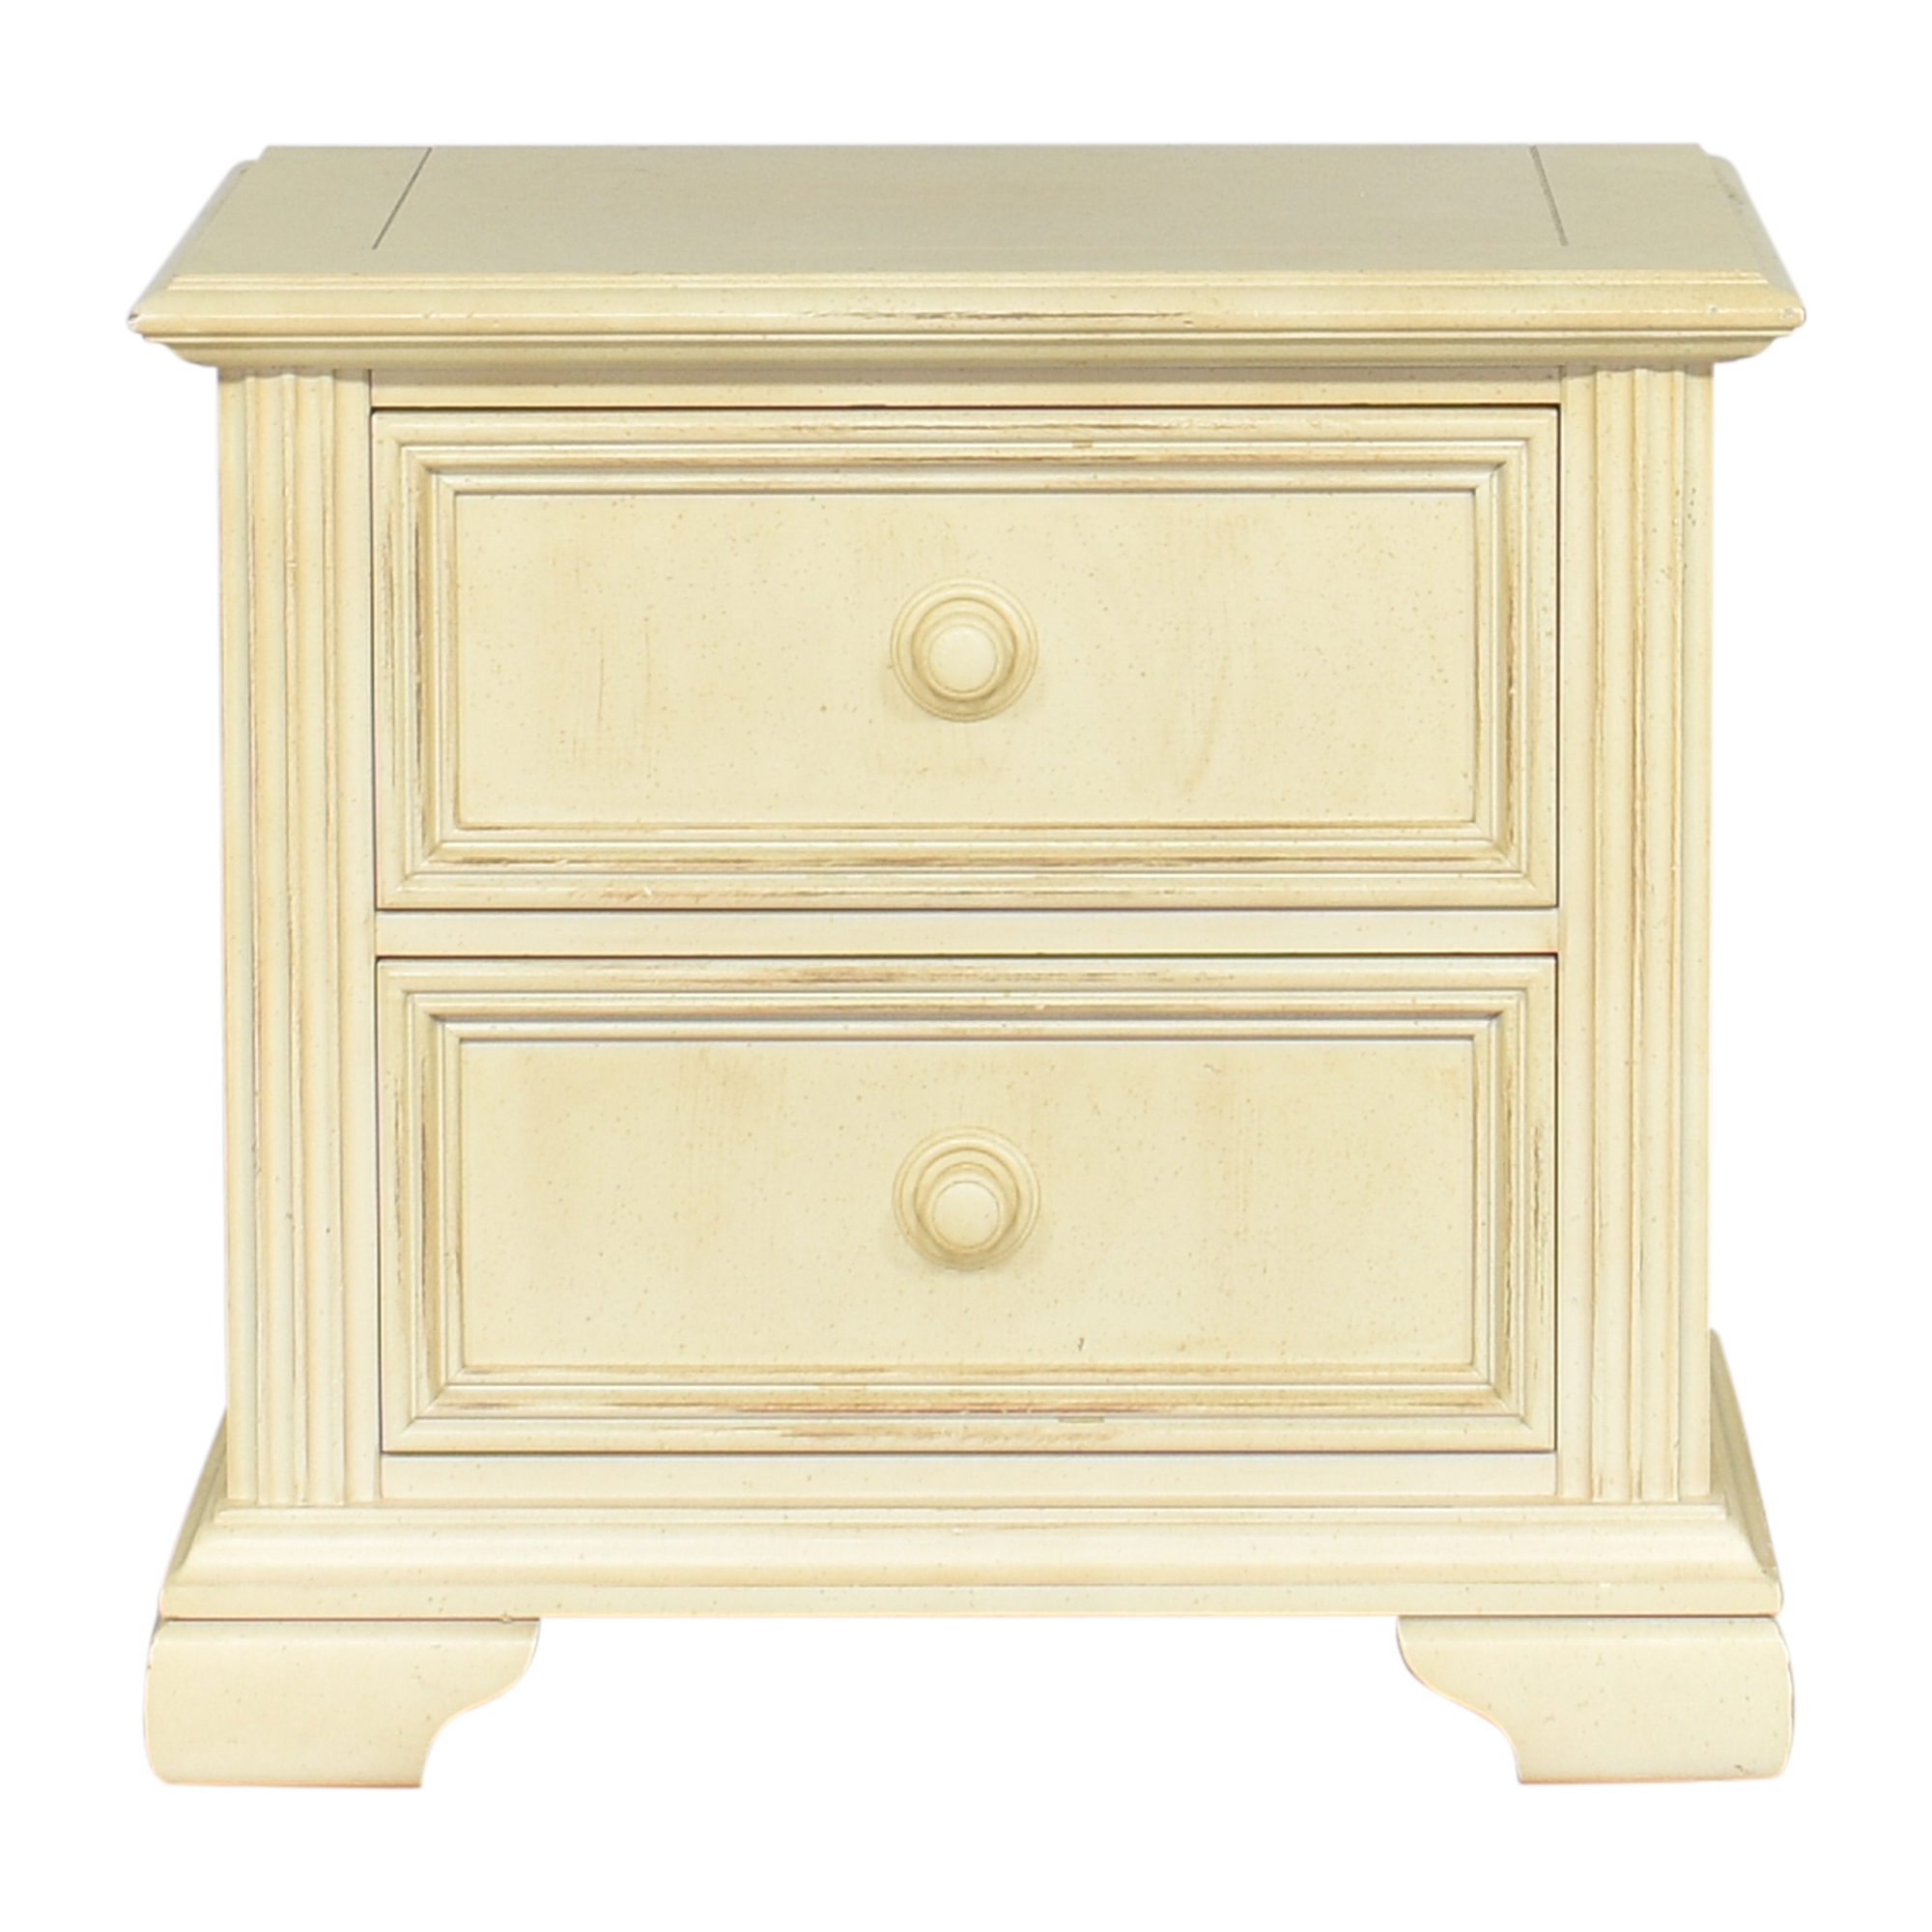 Stanley Furniture Stanley Furniture Distressed Two Drawer Nightstand pa